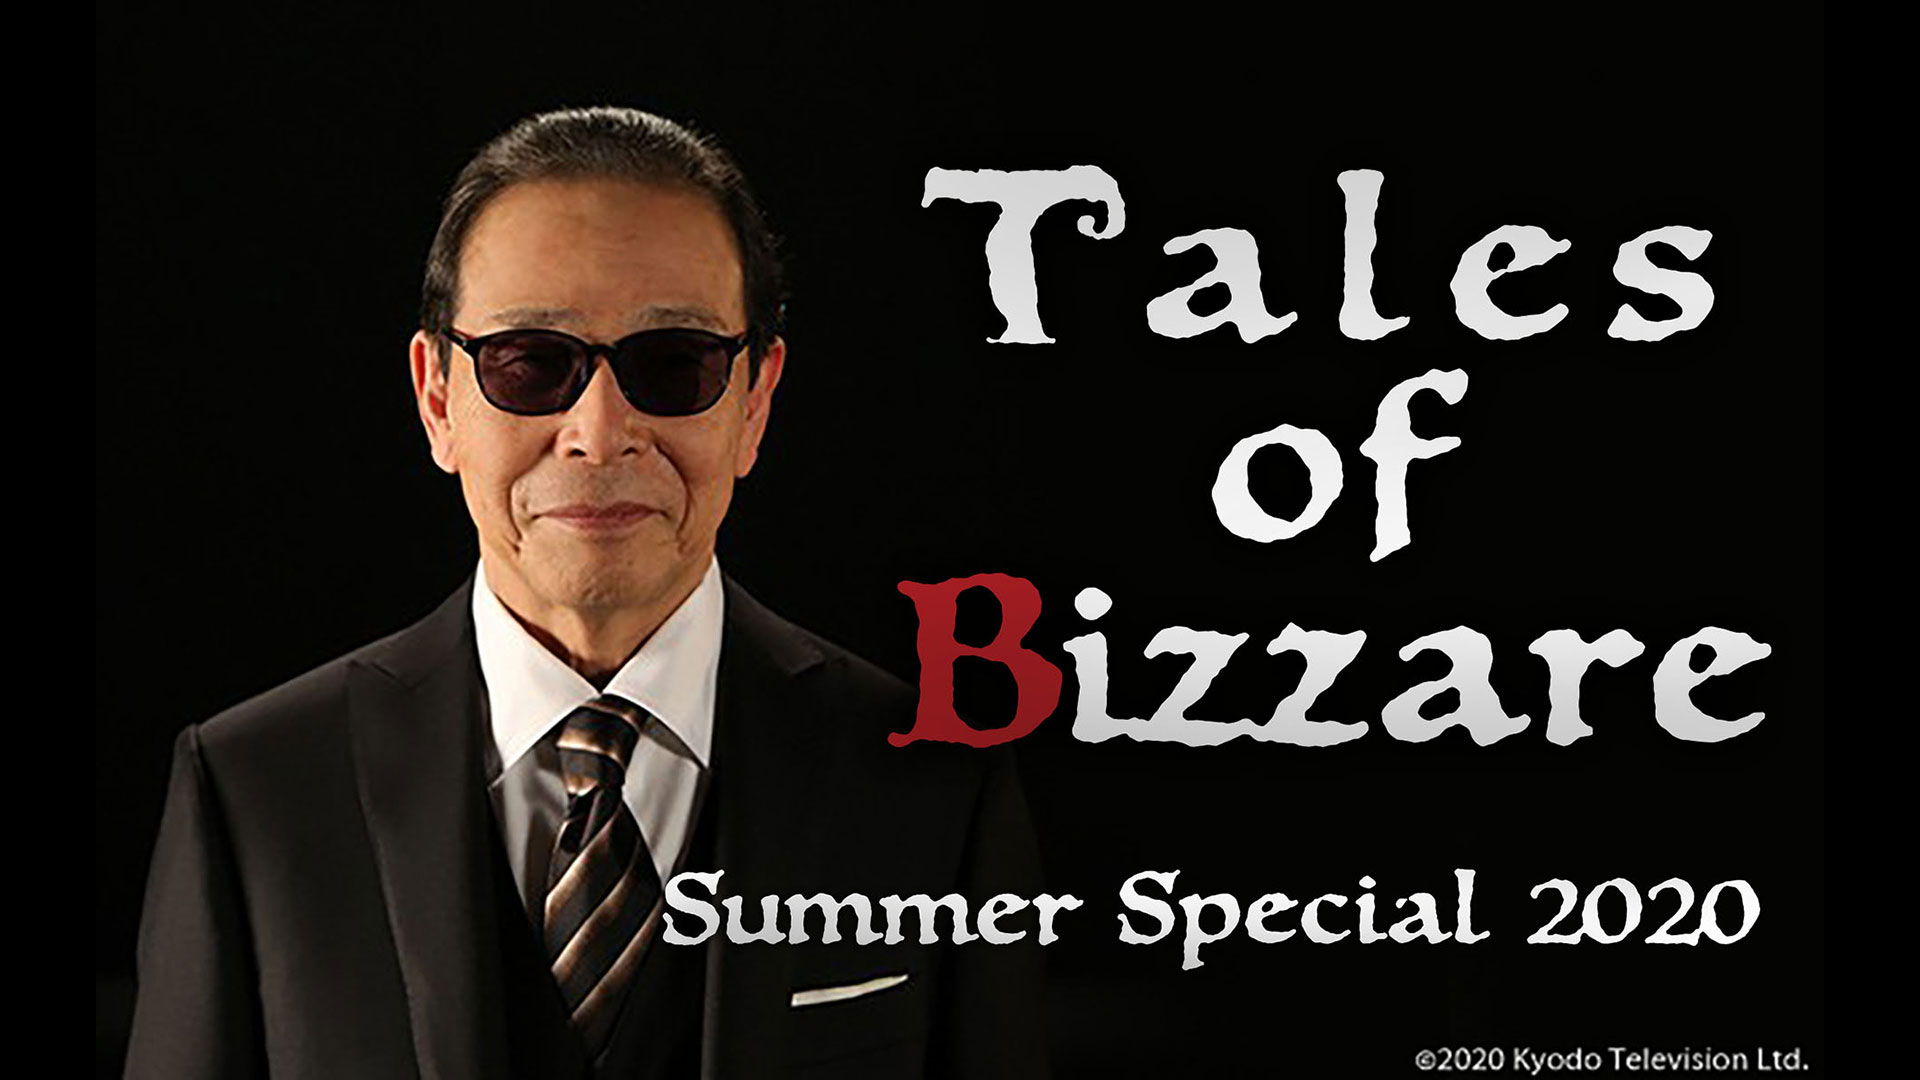 Tales of Bizzare Summer Special 2020